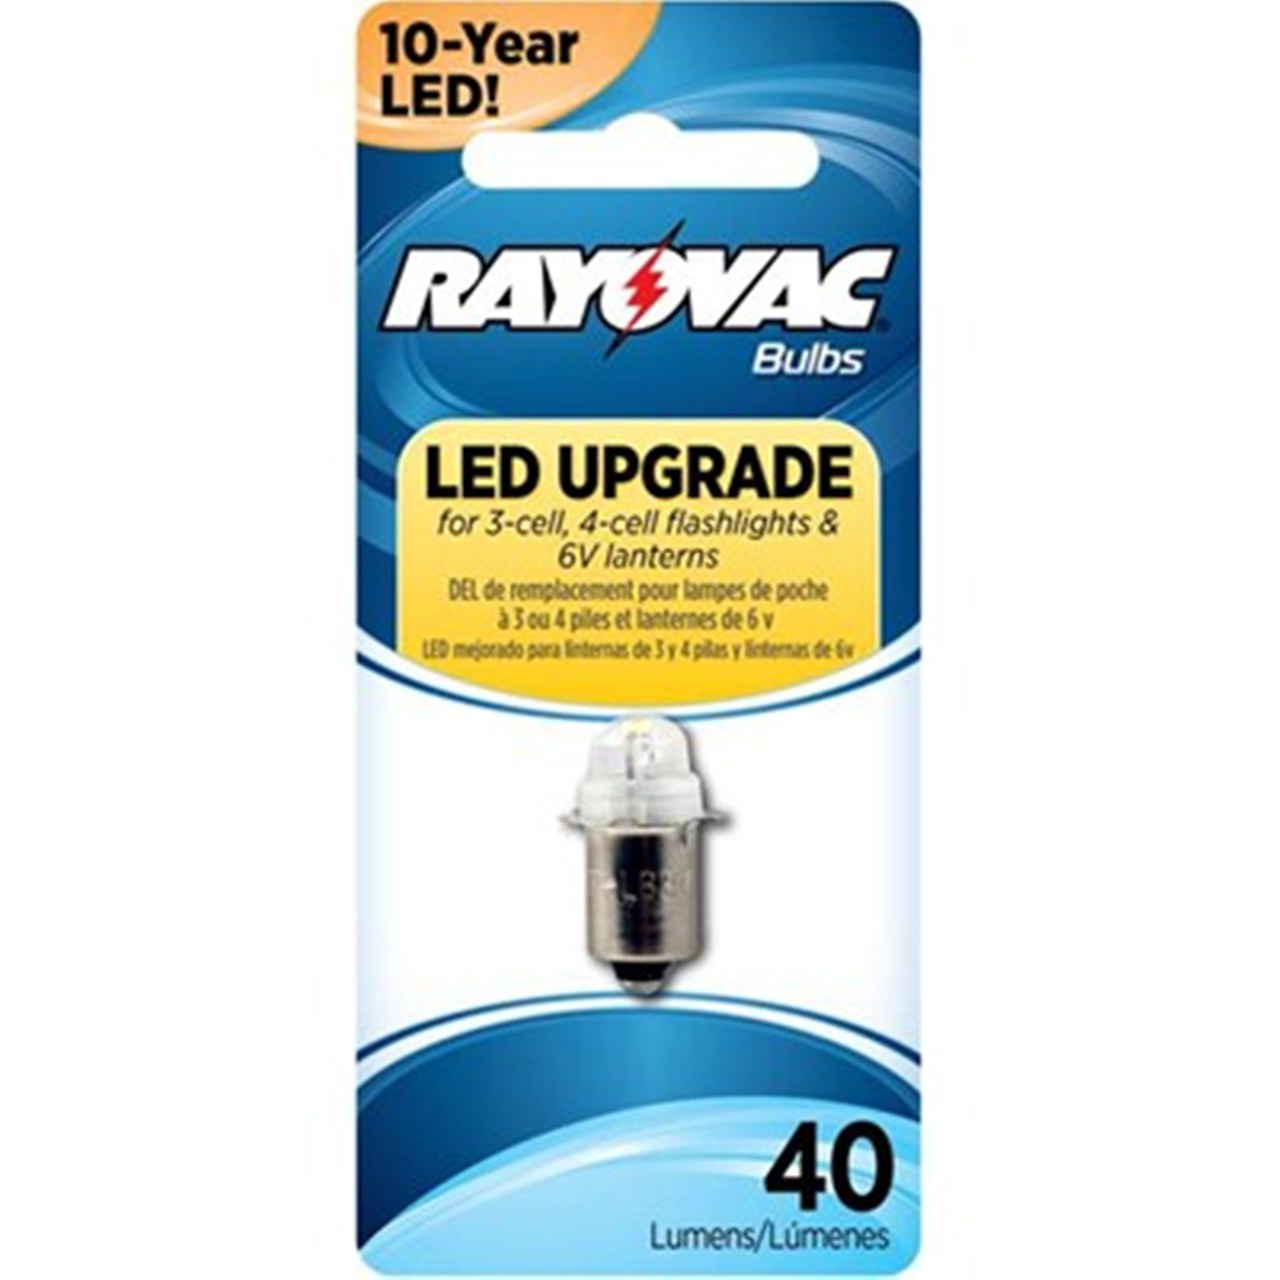 Rayovac LED Upgrade Bulb For 3-Cell  4-Cell Flashlights And Lanterns 4V6VLED + FREE SHIPPING!